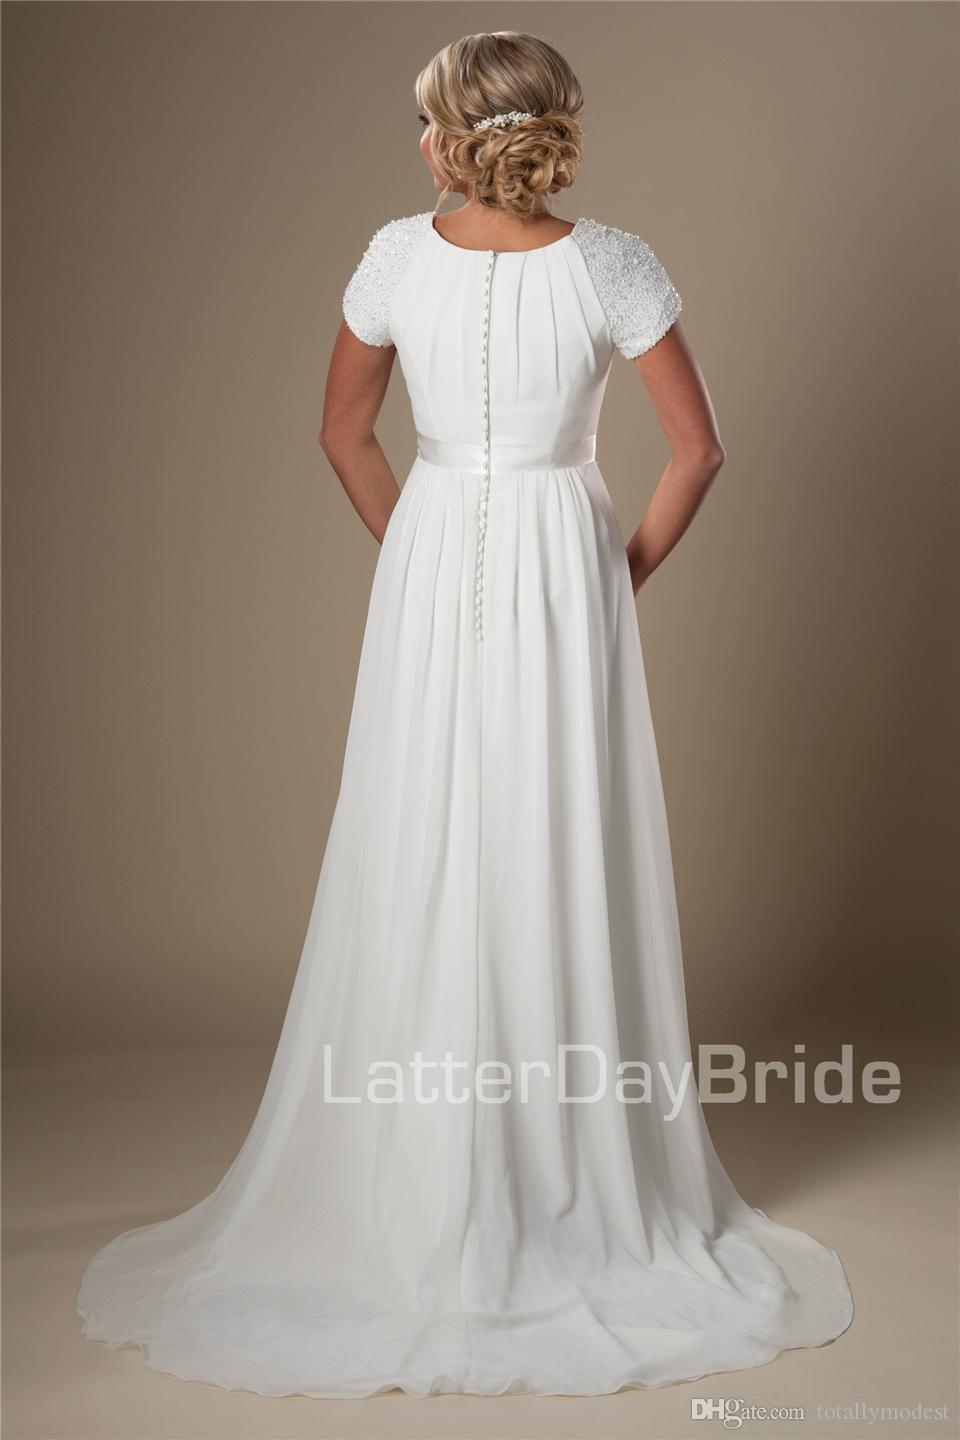 Ivory Beaded Chiffon Beach Modest Wedding Dresses With Cap Sleeves A-line Temple Bridal Gowns Informal Summer Wedding Gowns New Cheap